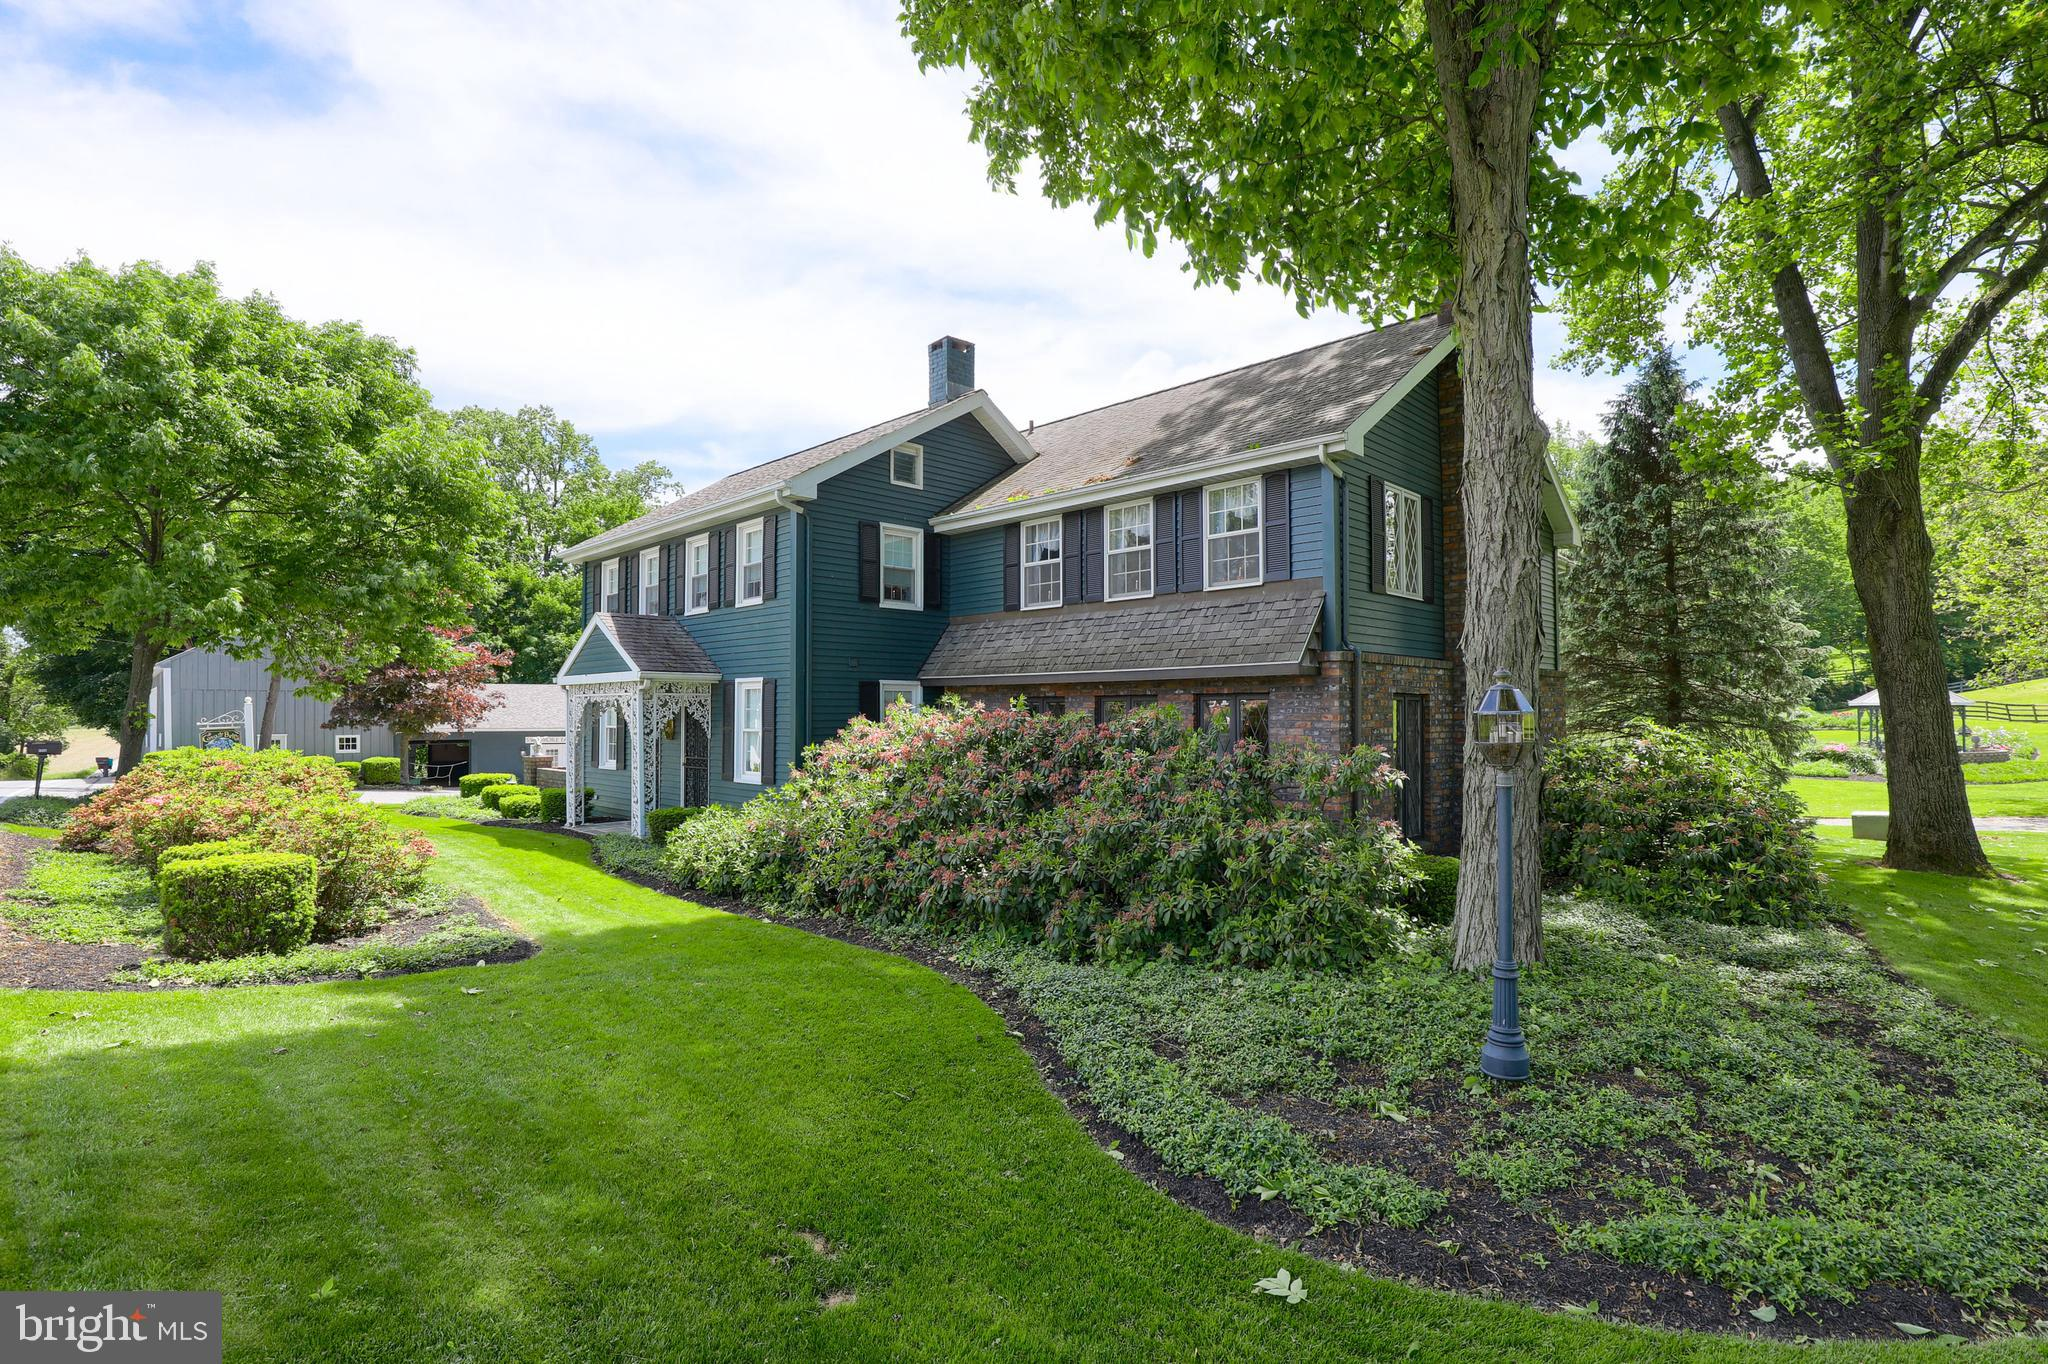 4338 OLD ORCHARD ROAD, YORK, PA 17402